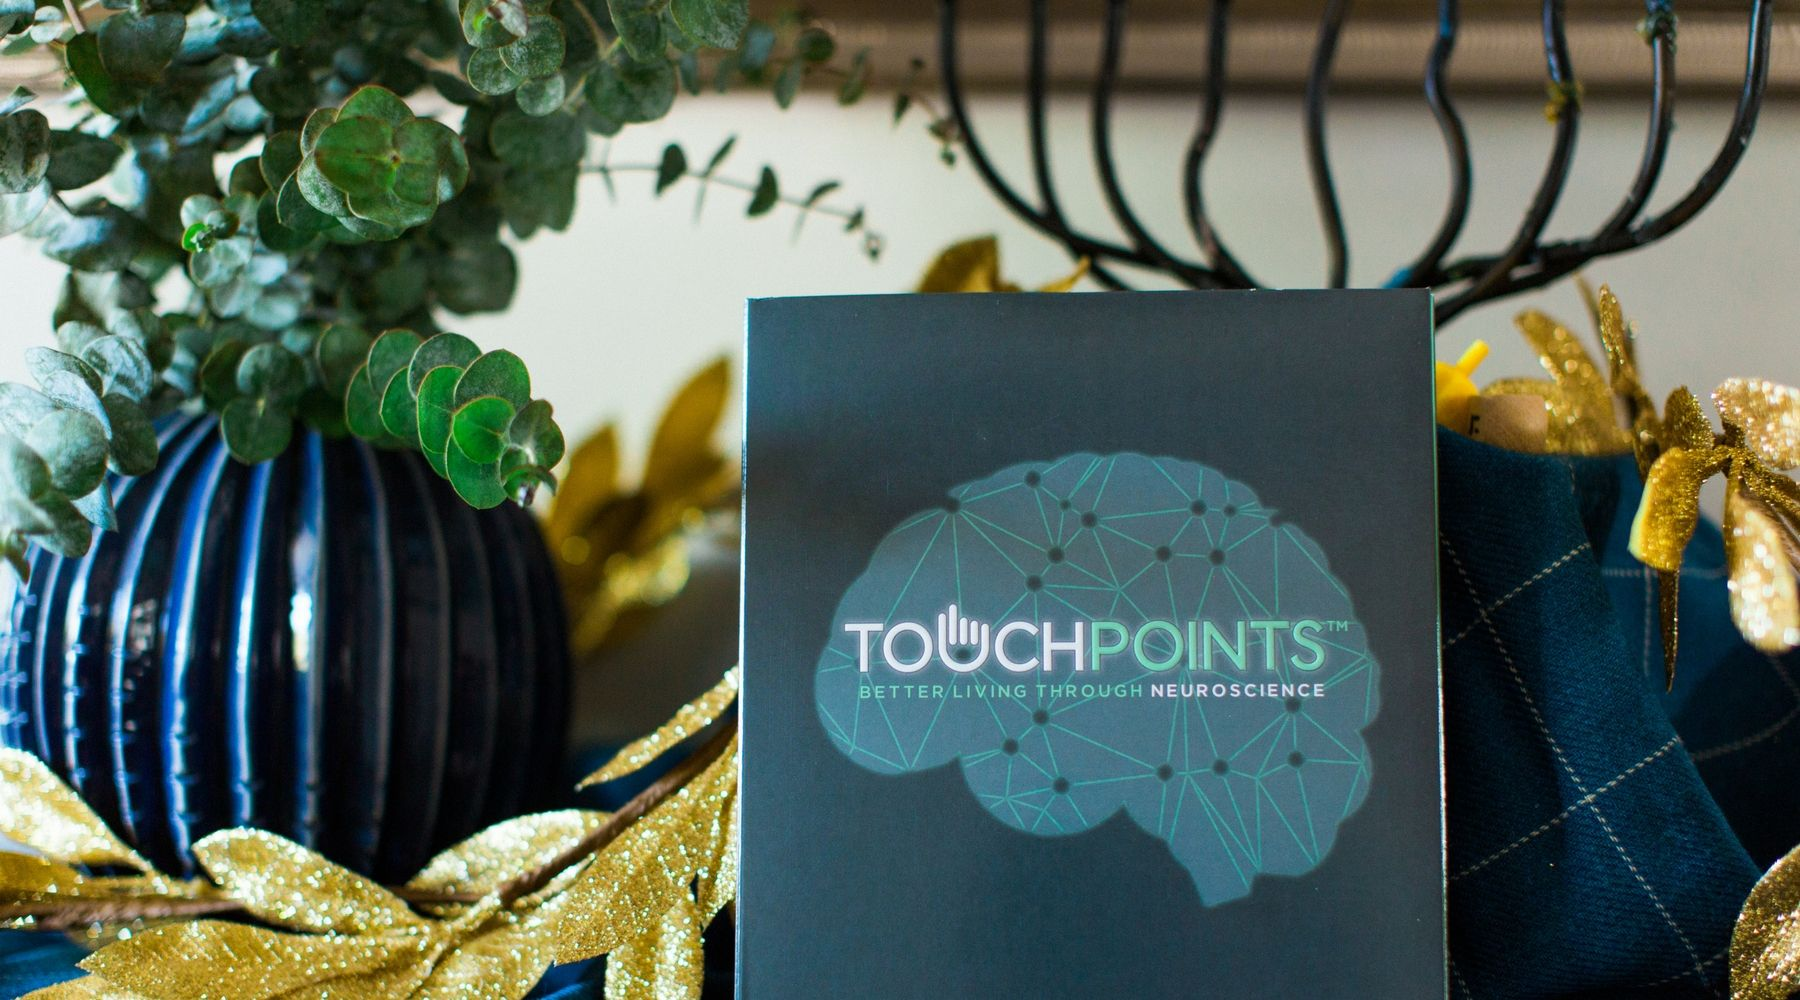 TouchPoints™ are the hottest gift of the season!